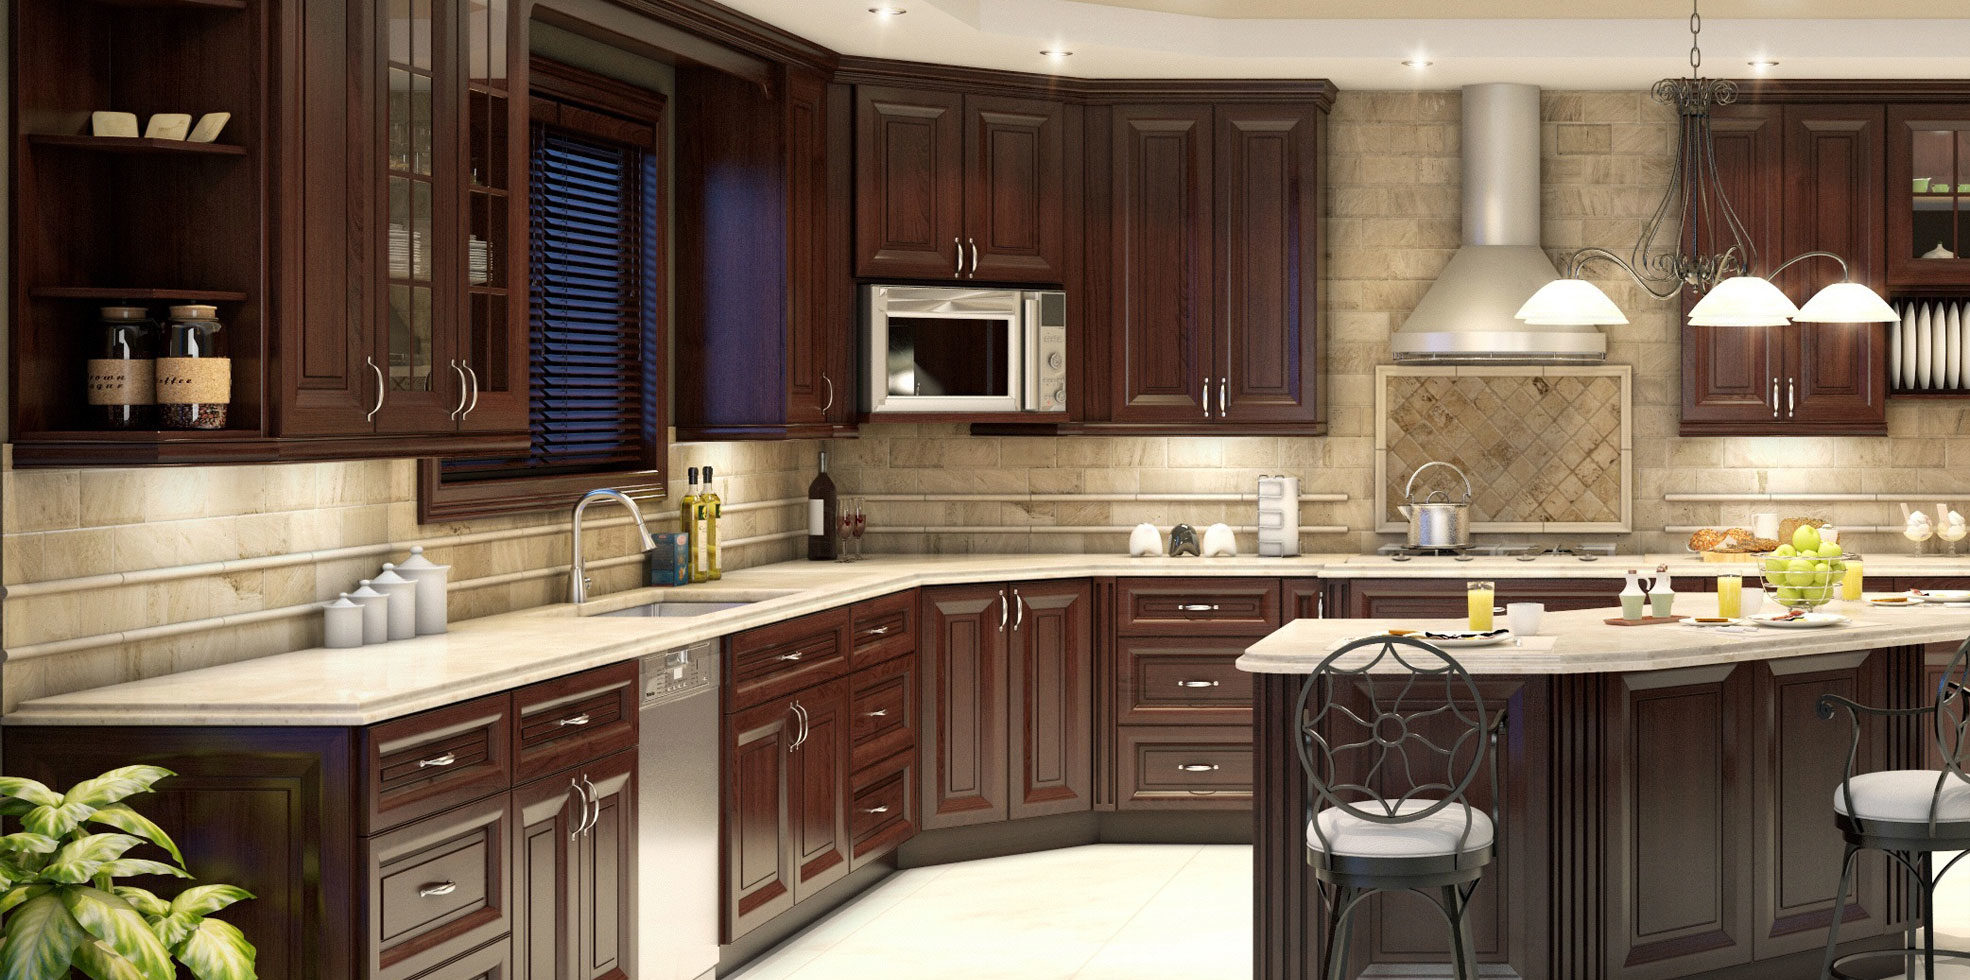 Modern Kitchen Tile Flooring On Modern Rta Cabinets Adornus Kitchen Cabinets Paint Colors For Kitchen Tile Flooring